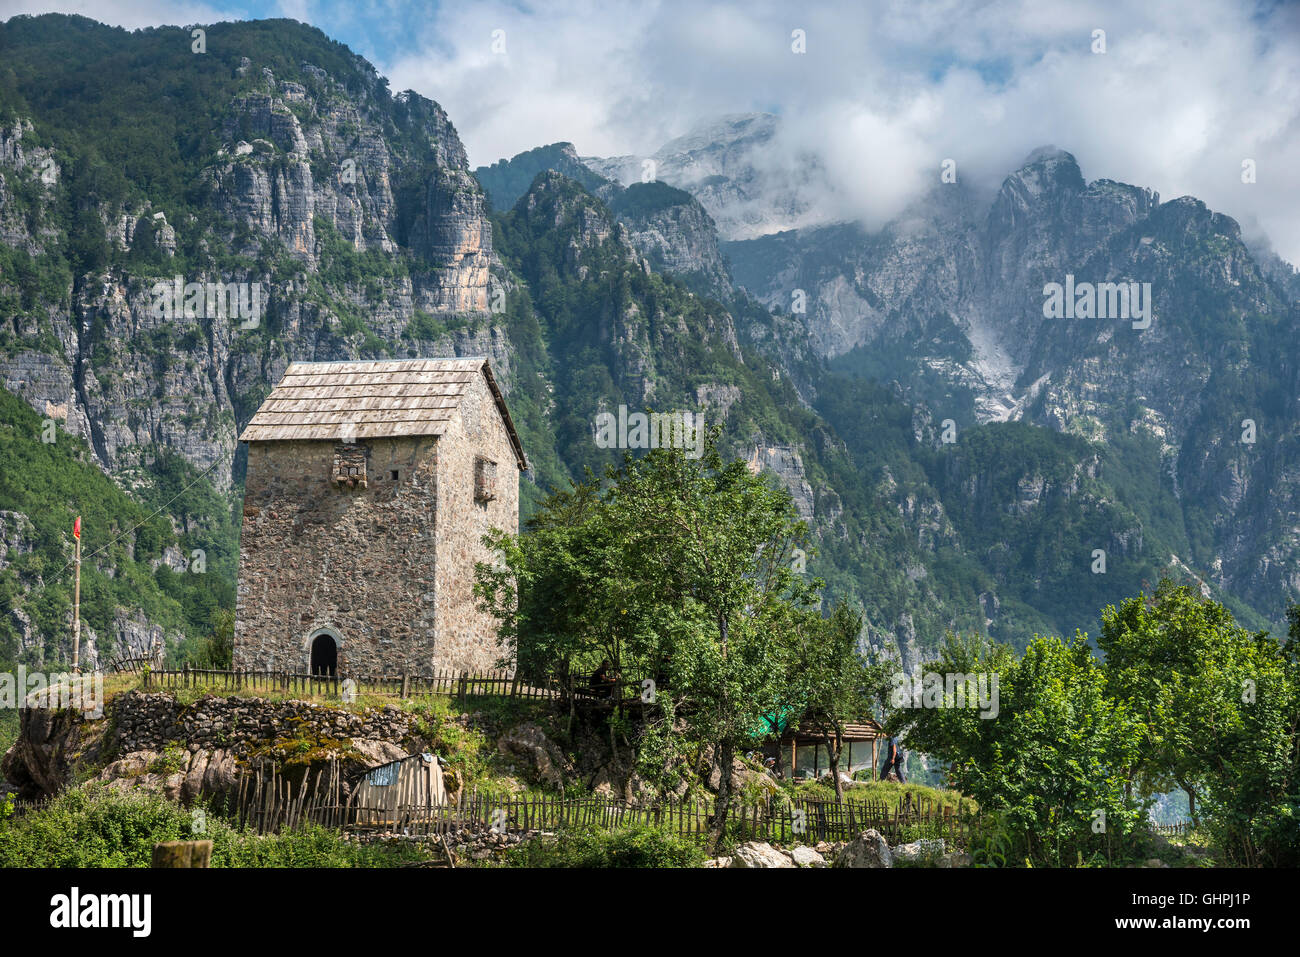 The Kulla, lock-in tower at Theth, with the Albanian Alps in the background, Northern Albania. - Stock Image